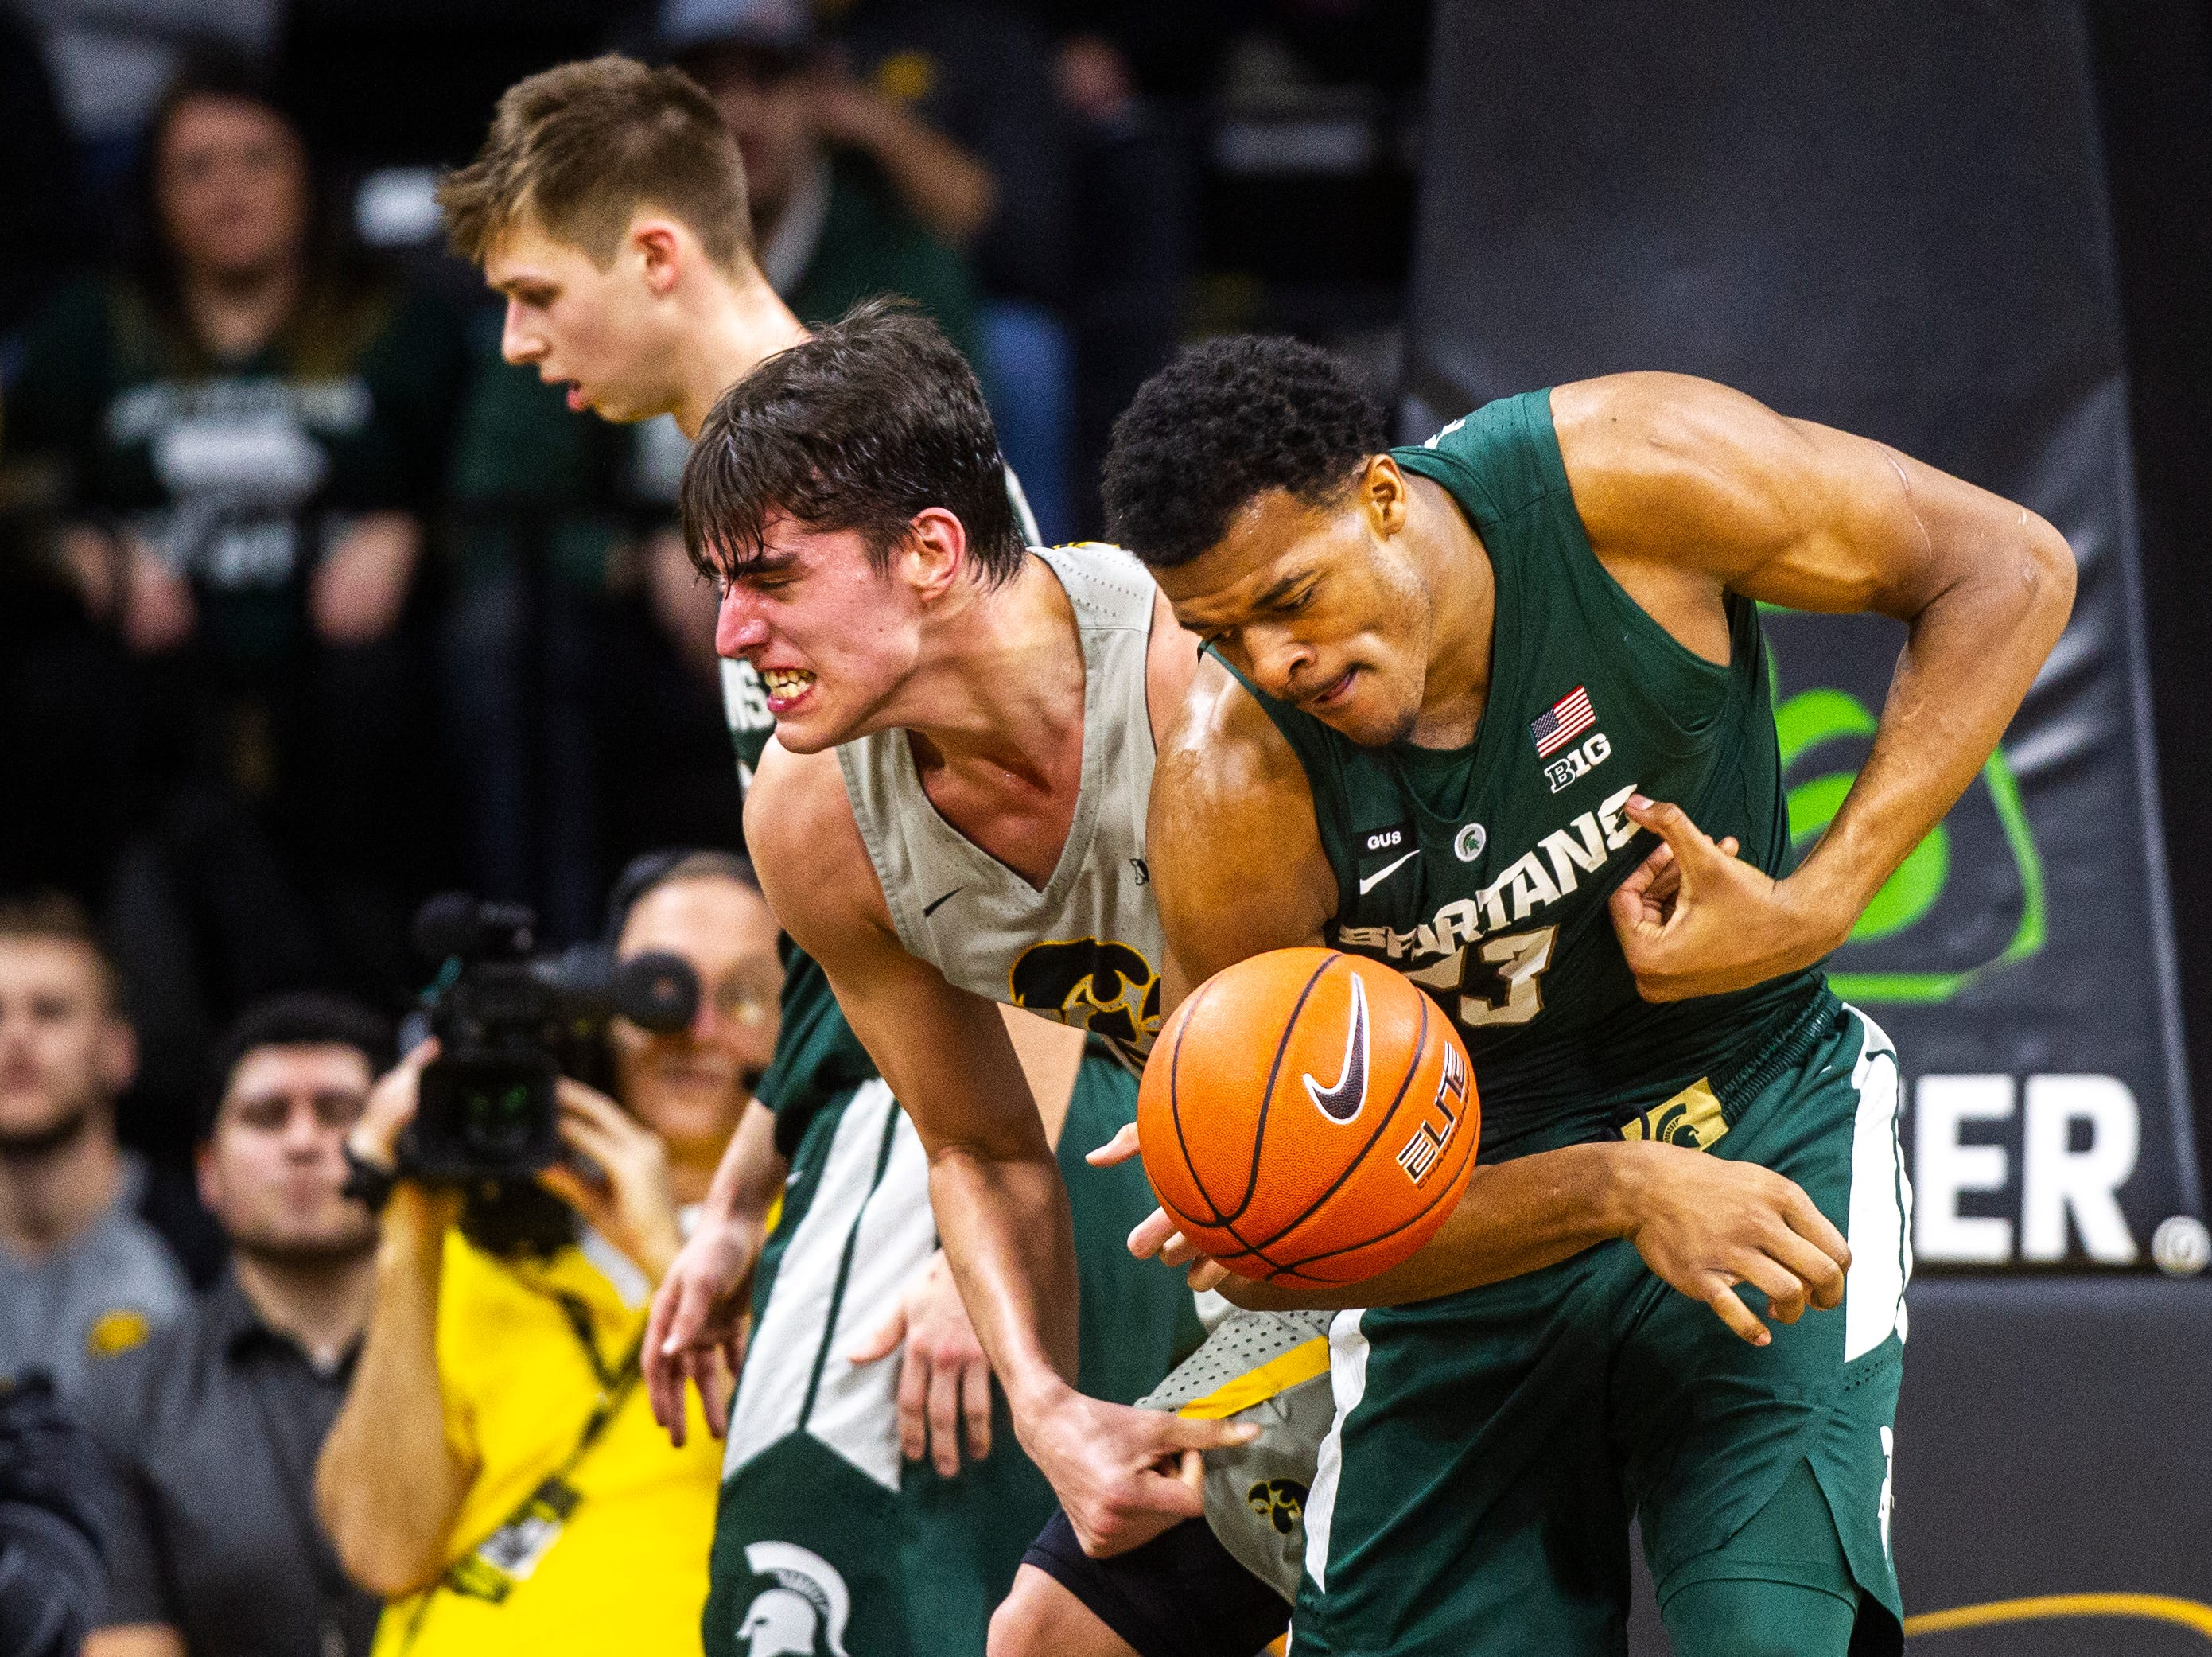 Iowa forward Luka Garza (55) and Michigan State forward Xavier Tillman (23) get tangled up while going for a rebound during a NCAA Big Ten Conference men's basketball game on Thursday, Jan. 24, 2019, at Carver-Hawkeye Arena in Iowa City, Iowa.